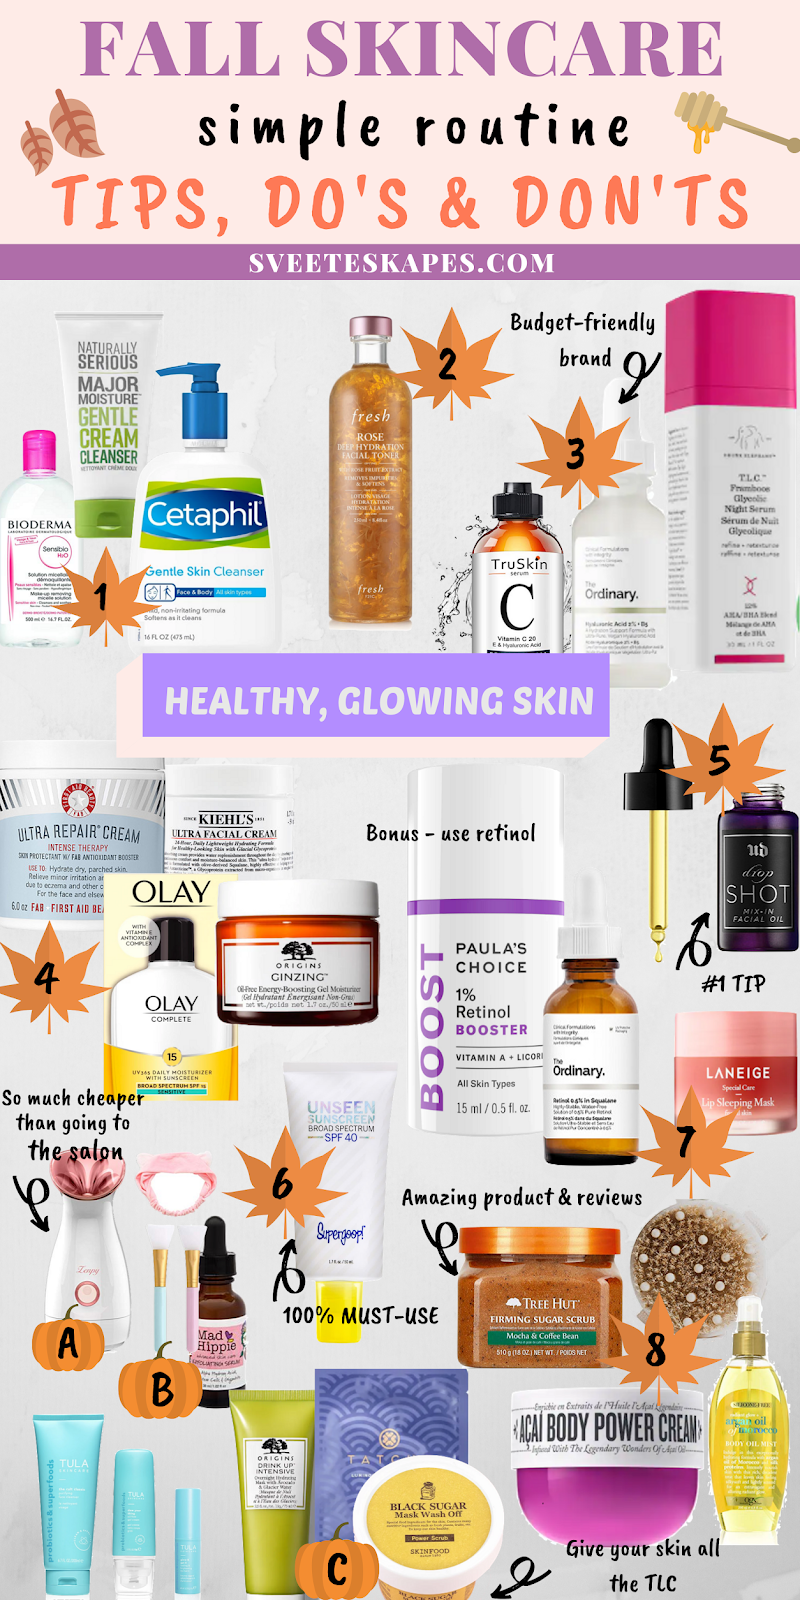 Fall skincare routine tips featured by top US life and style blog, Sveeteskapes